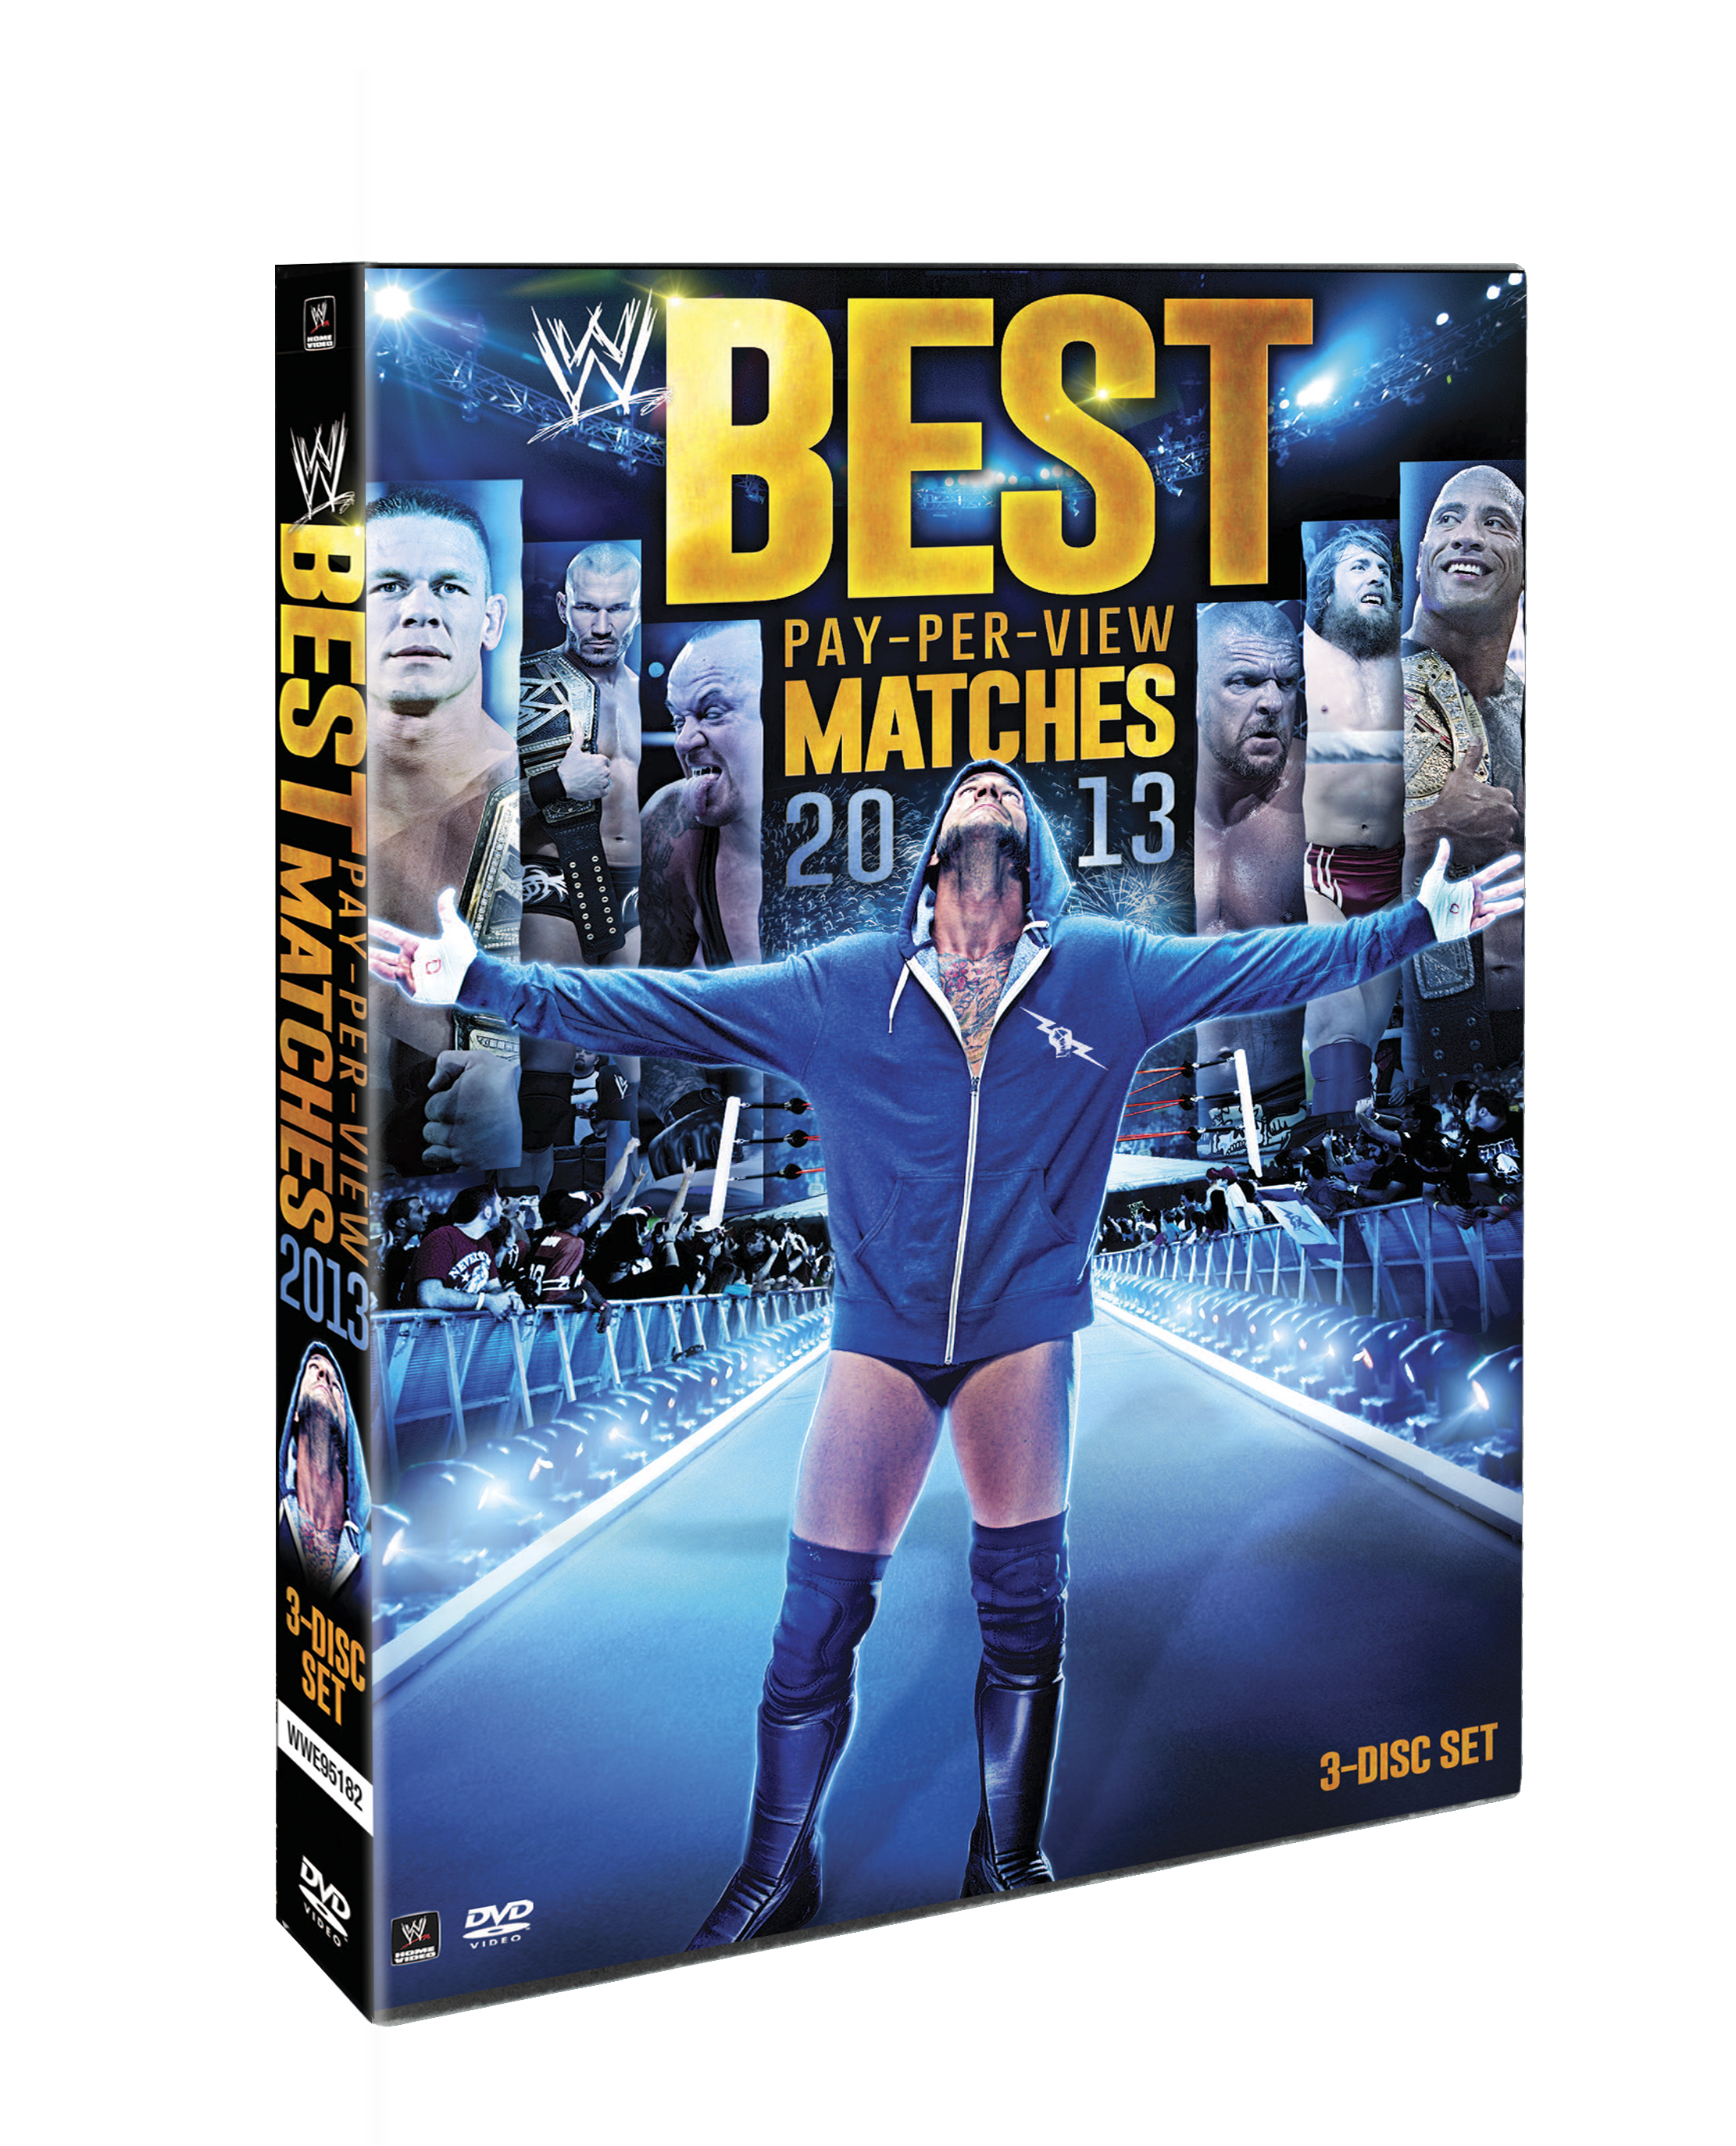 Best Pay-Per-View Matches 2013 - WWE - Cinedigm Entertainment